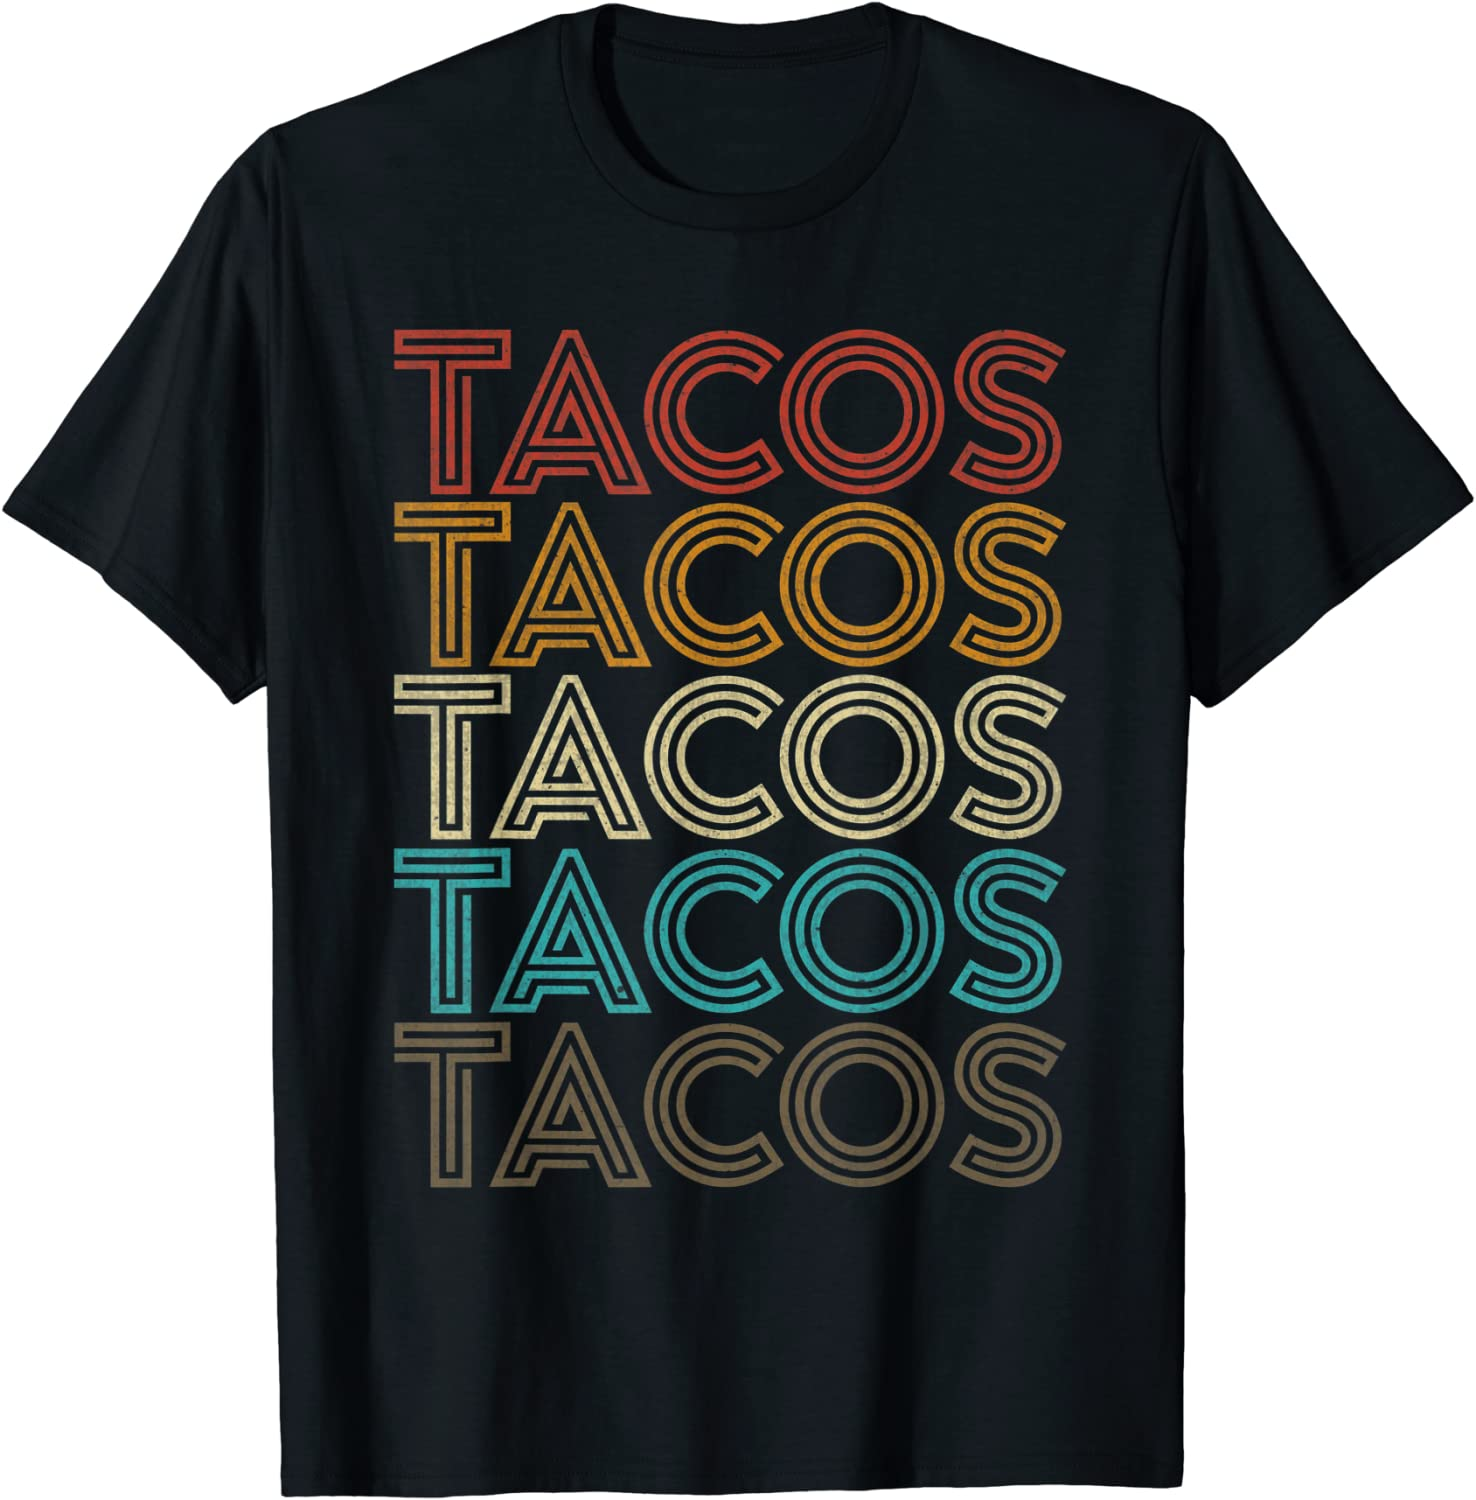 Top 10 Food Tshirts Girls